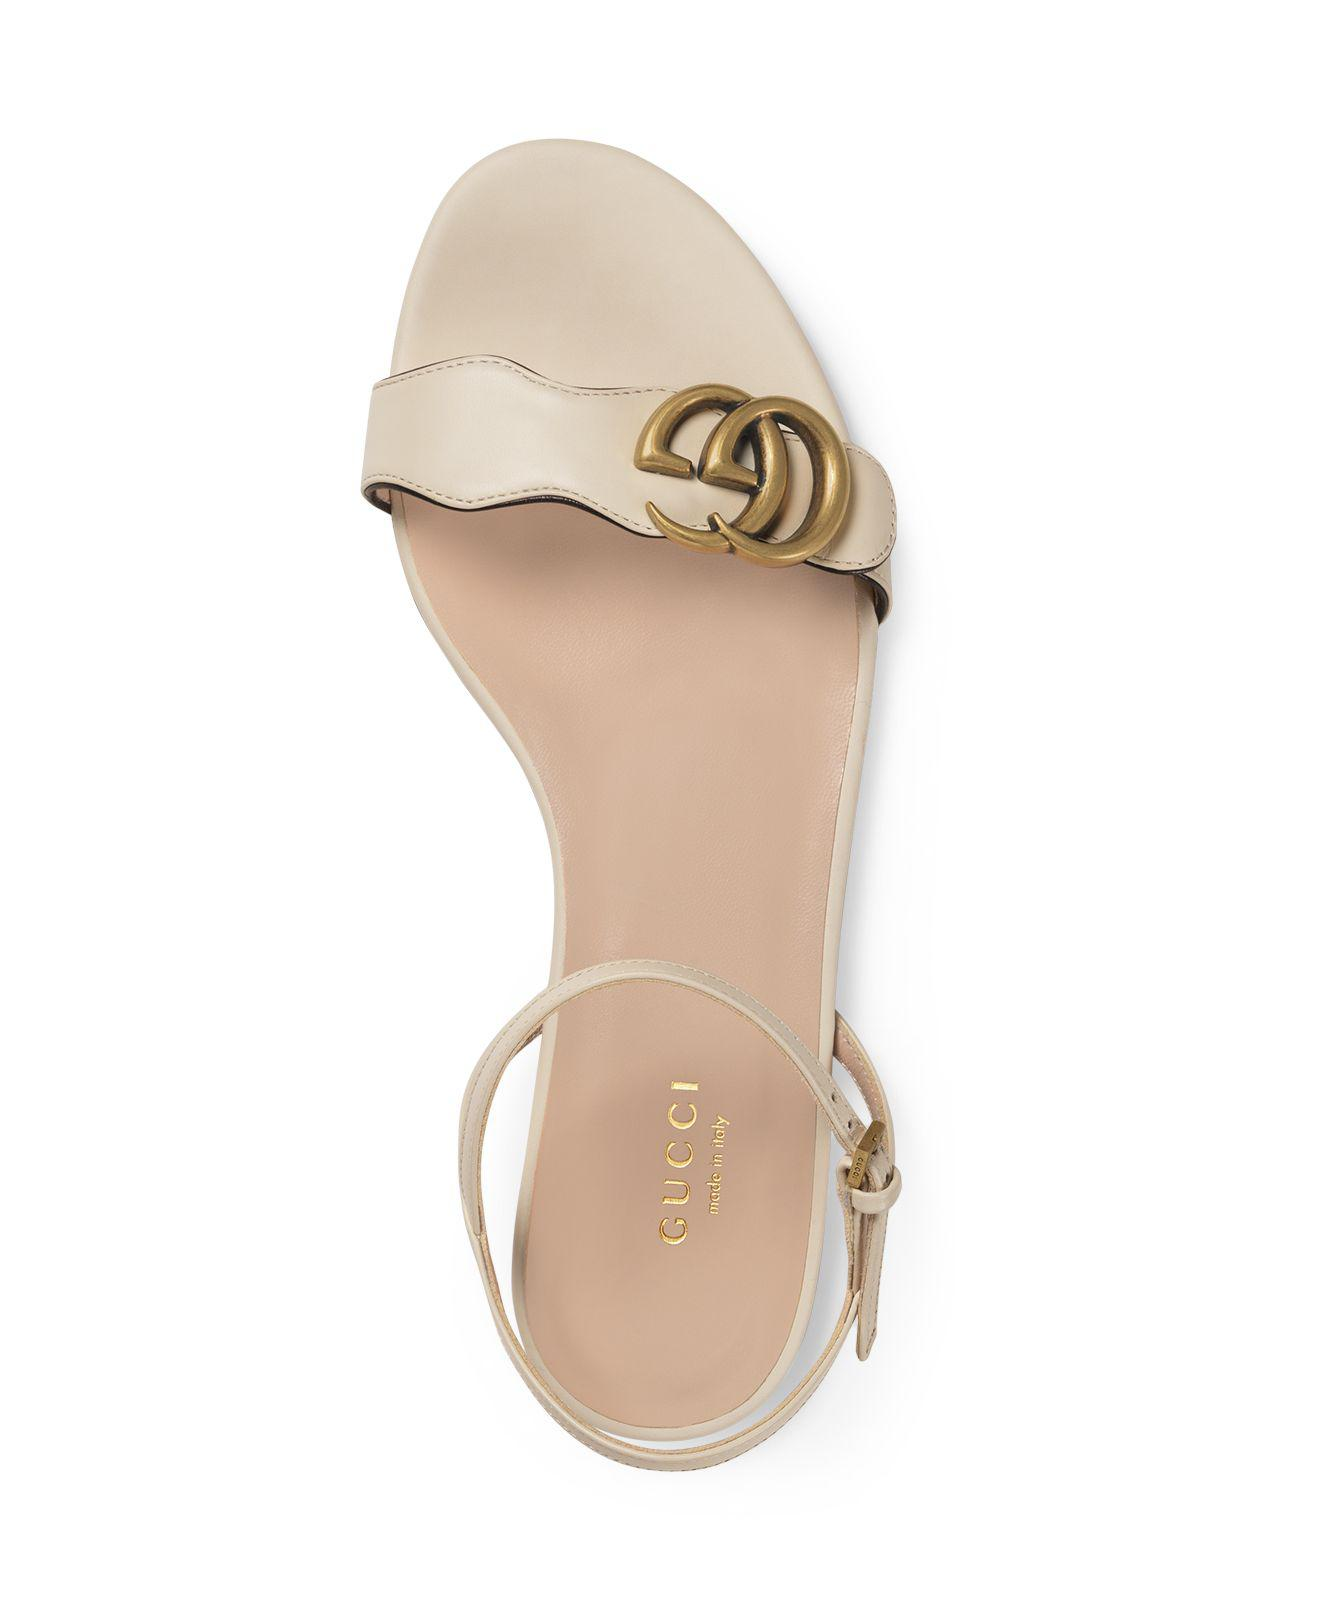 f0b71642c Gucci Women's Marmont Leather Double G Sandals in White - Lyst